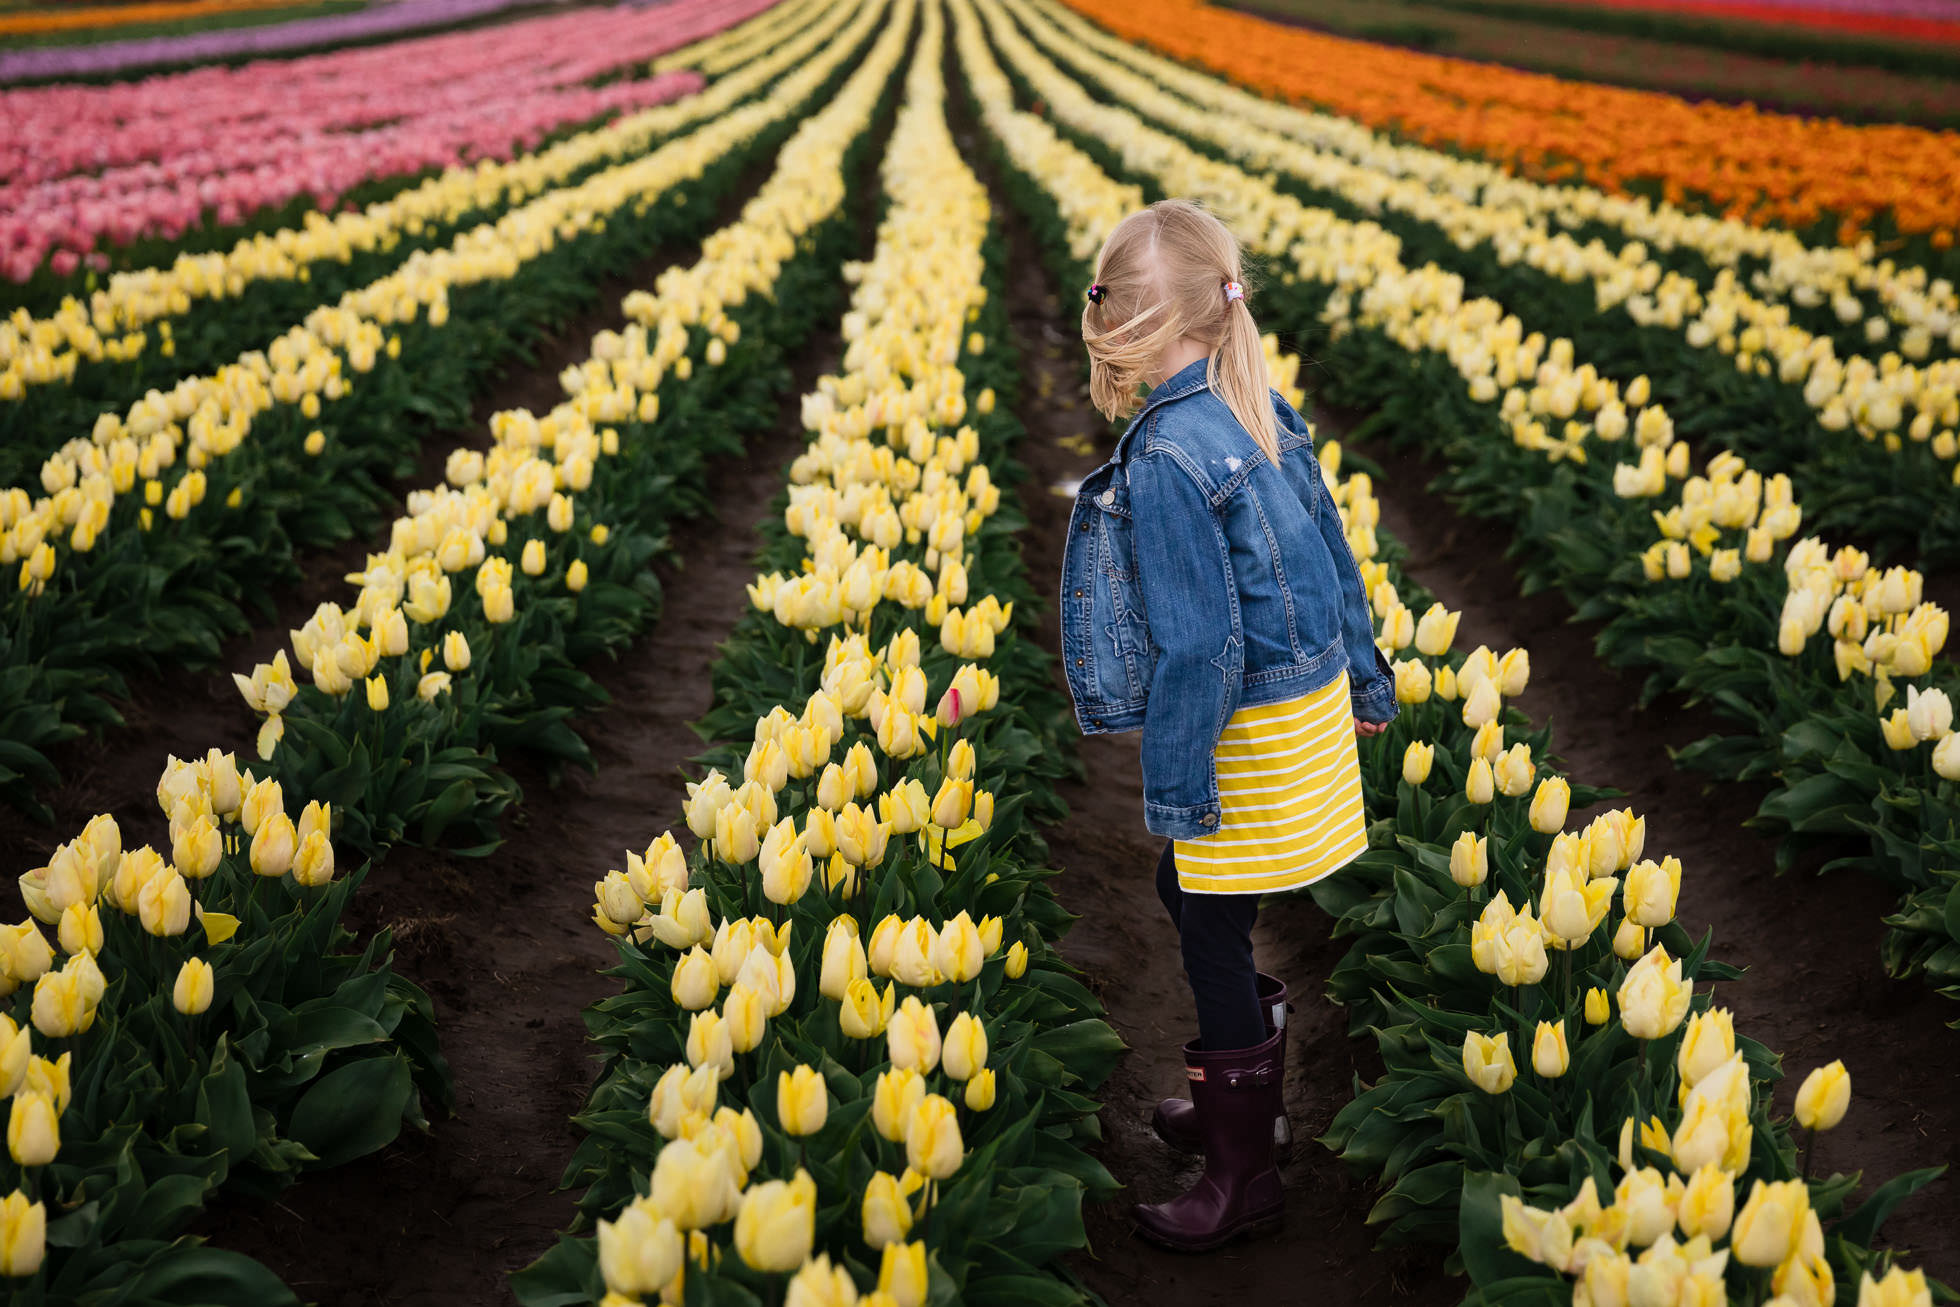 wind blows girls hair standing in tulip fields by rebecca hunnicutt farren childrens photographer in portland oregon and vancouver washington